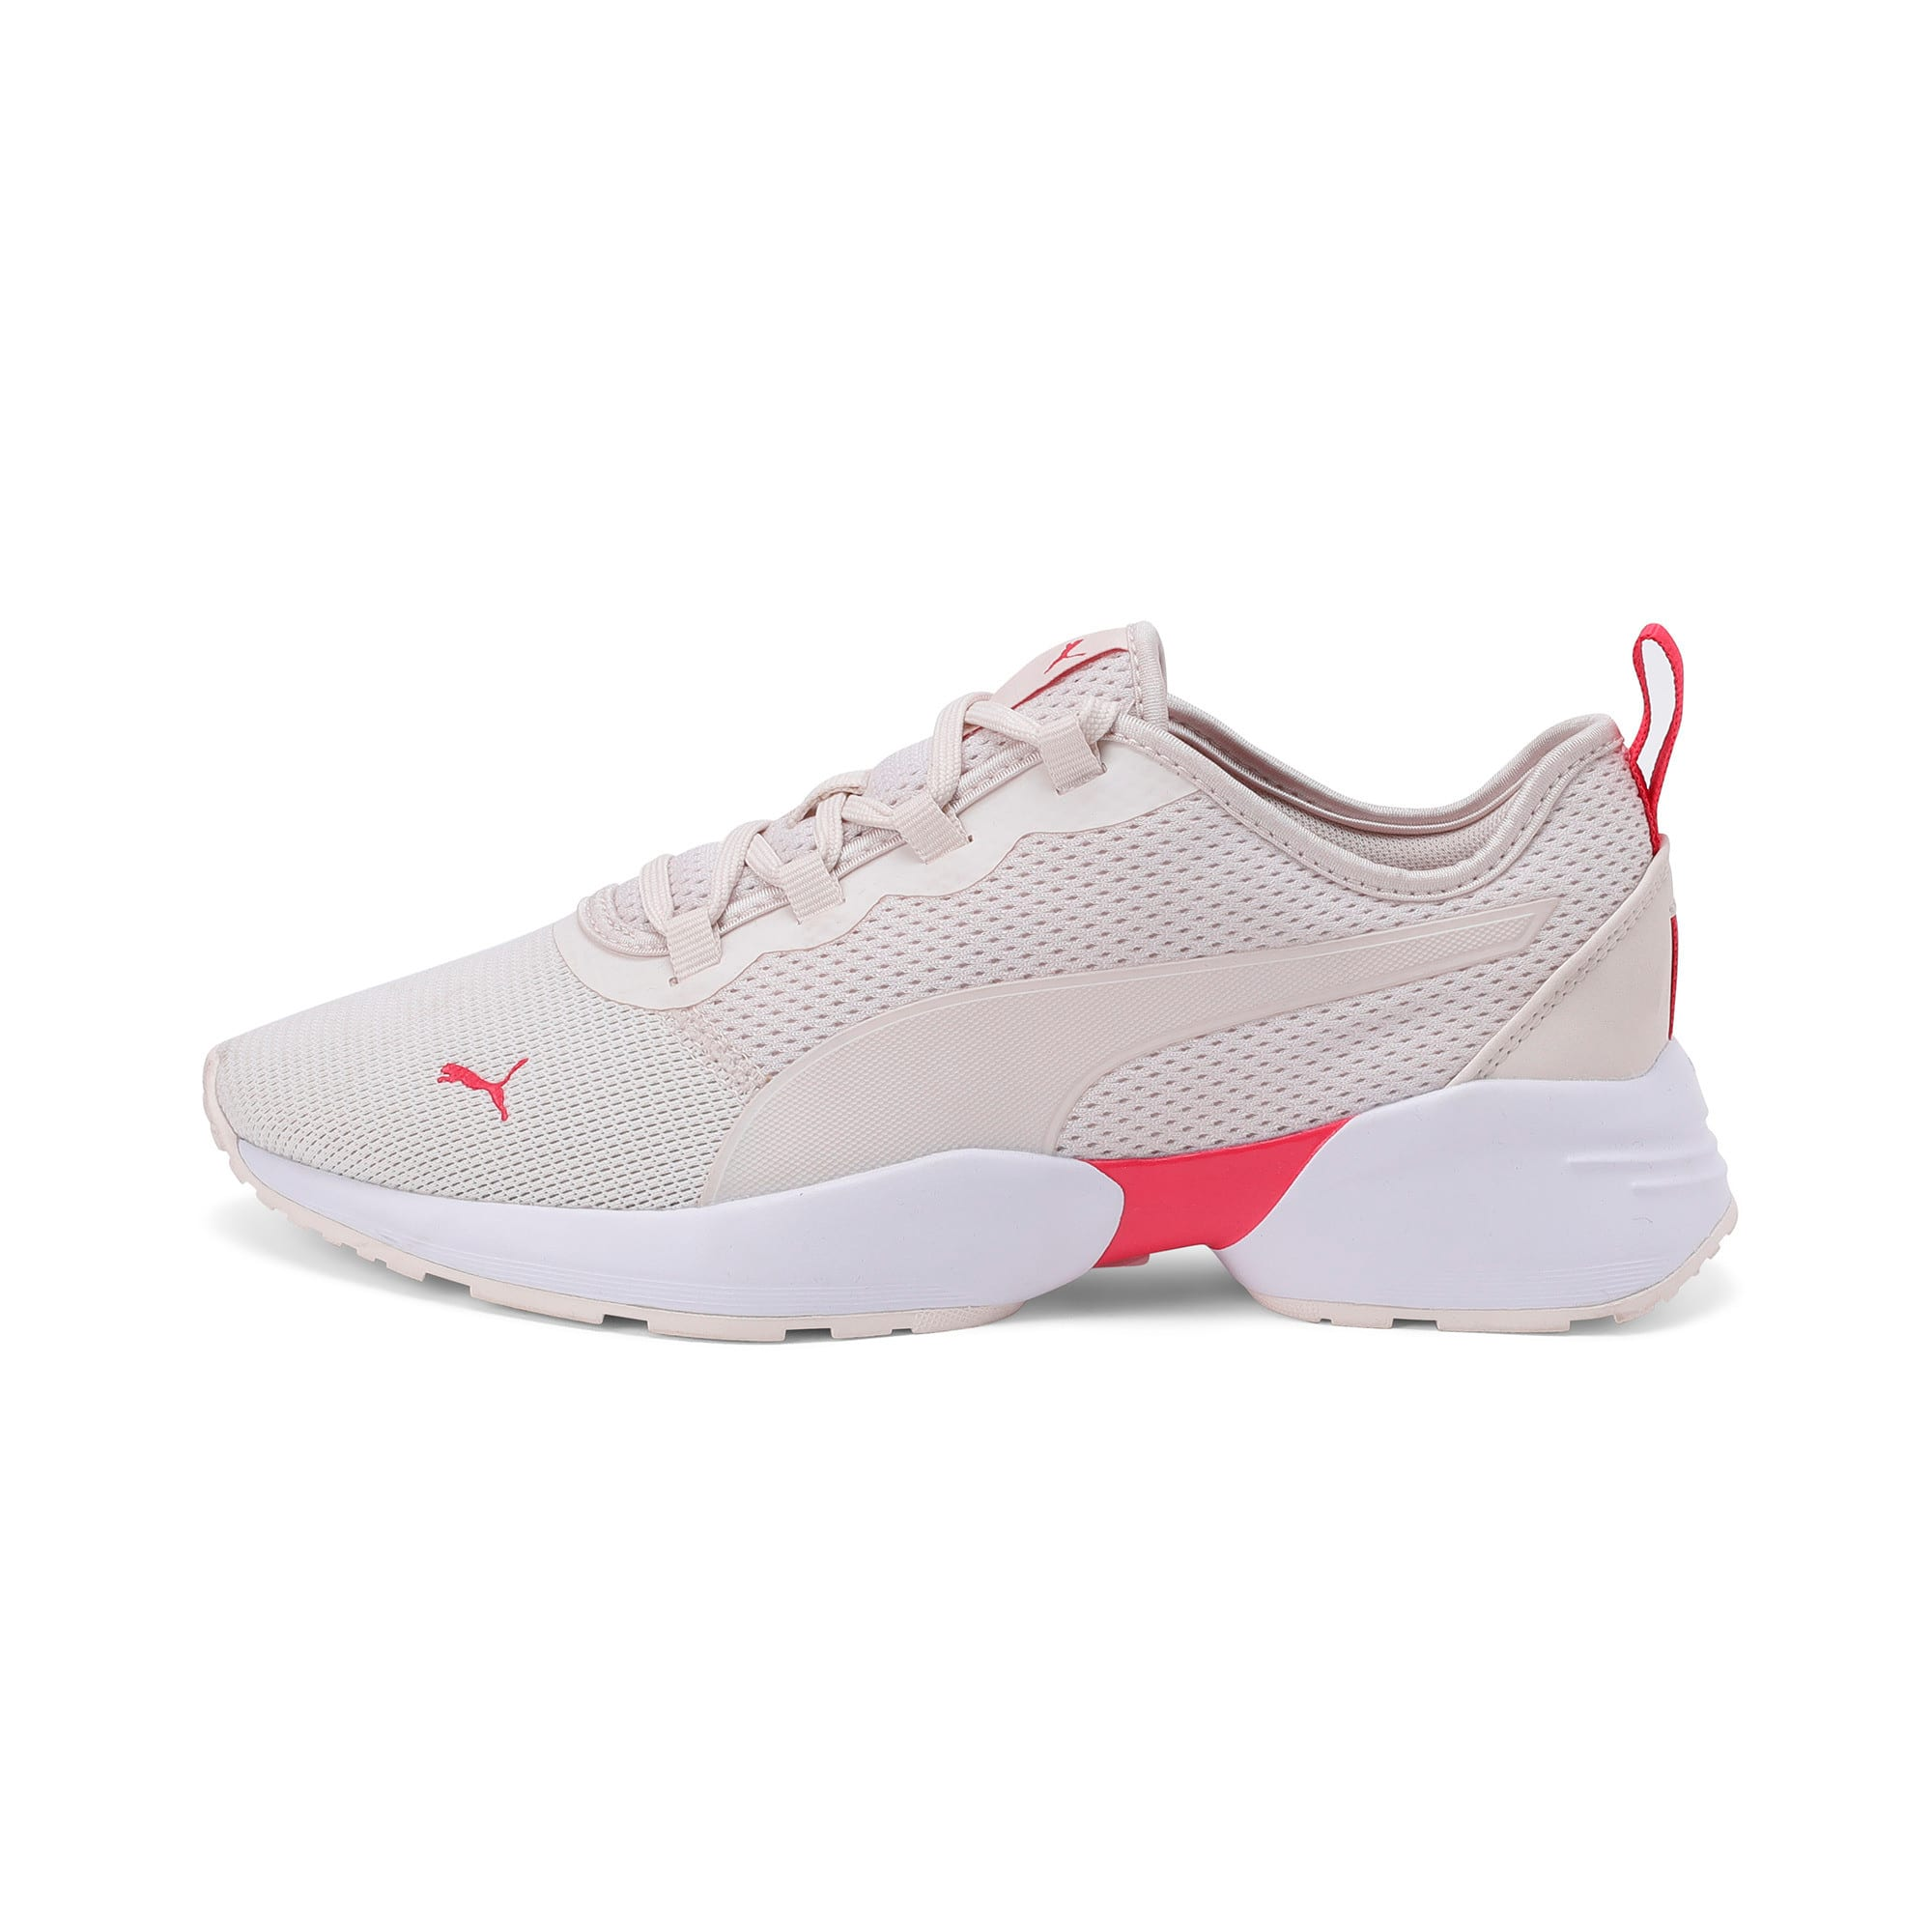 Thumbnail 1 of Sirena Sport Women's Trainers, Pastel Parchment-Nrgy Rose, medium-IND